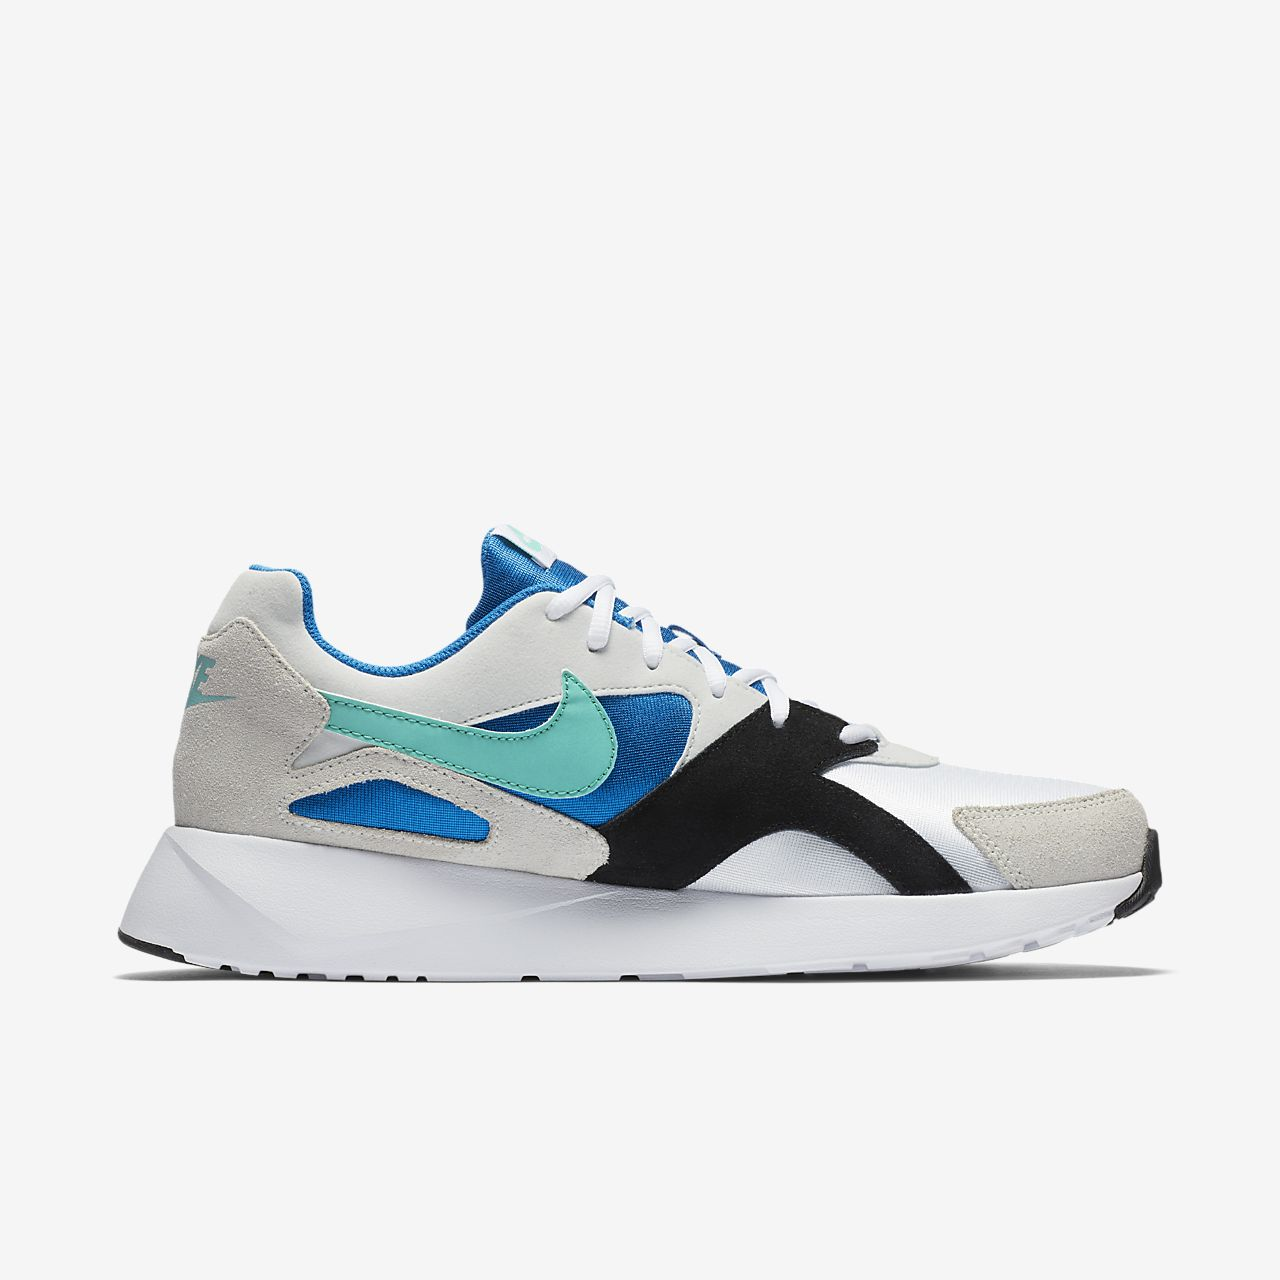 new arrival 6a29e a8186 Low Resolution Chaussure Nike Pantheos pour Homme Chaussure Nike Pantheos  pour Homme